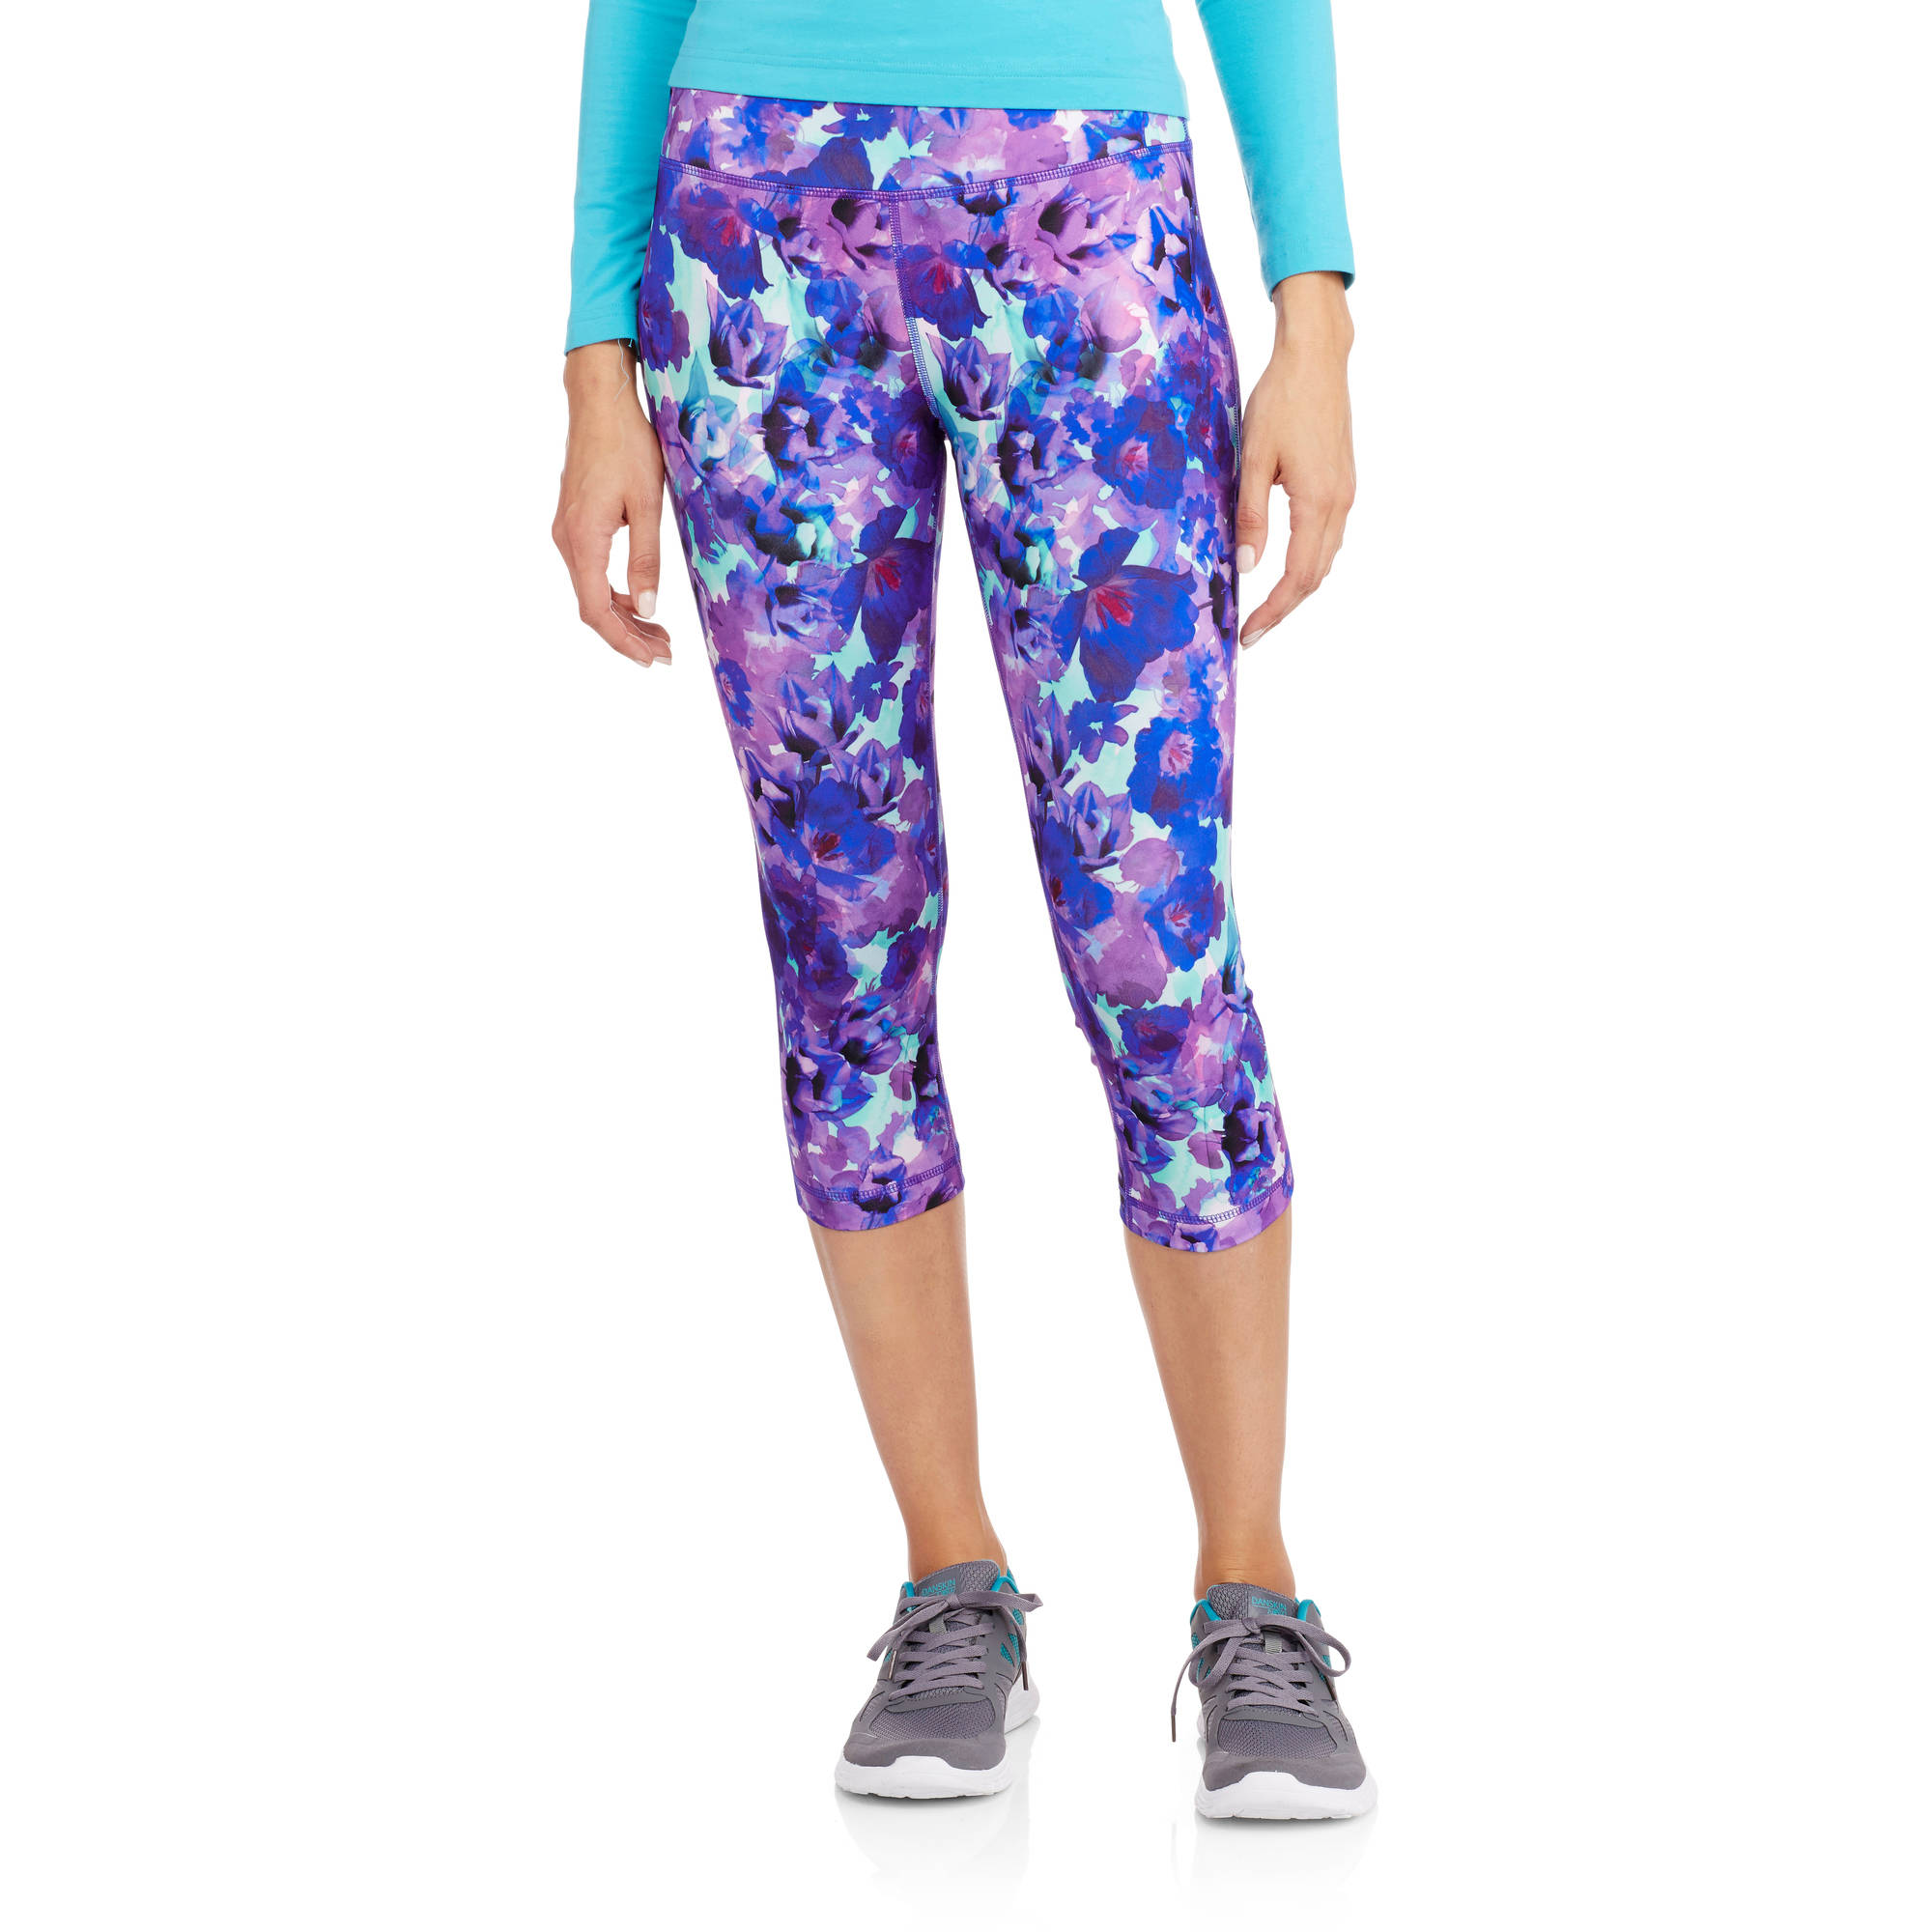 Danskin Now Women's Printed Capri Tight